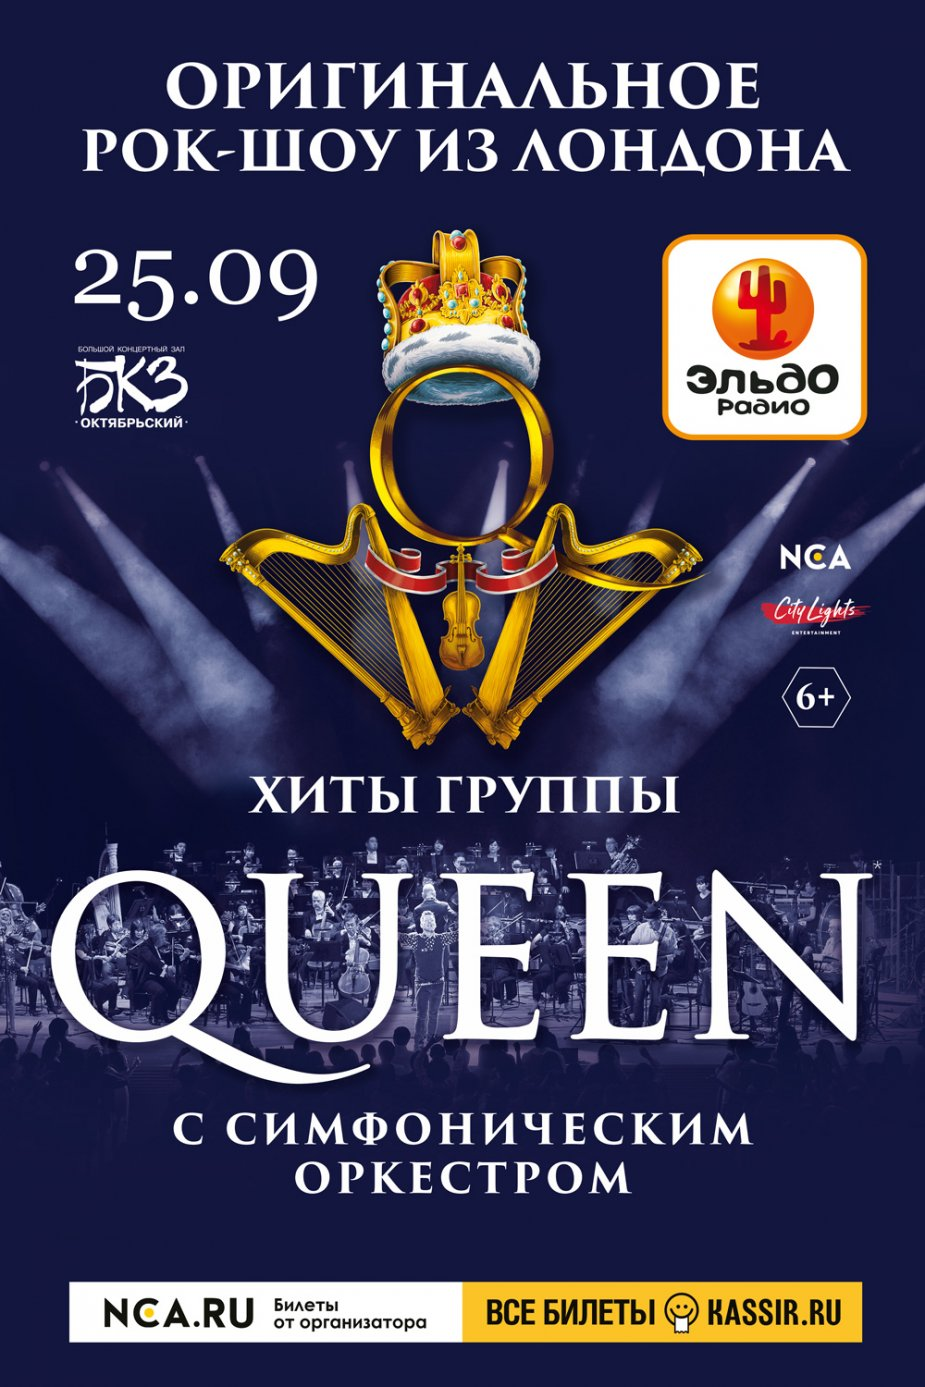 «Queen Rock and Symphonic Show»!